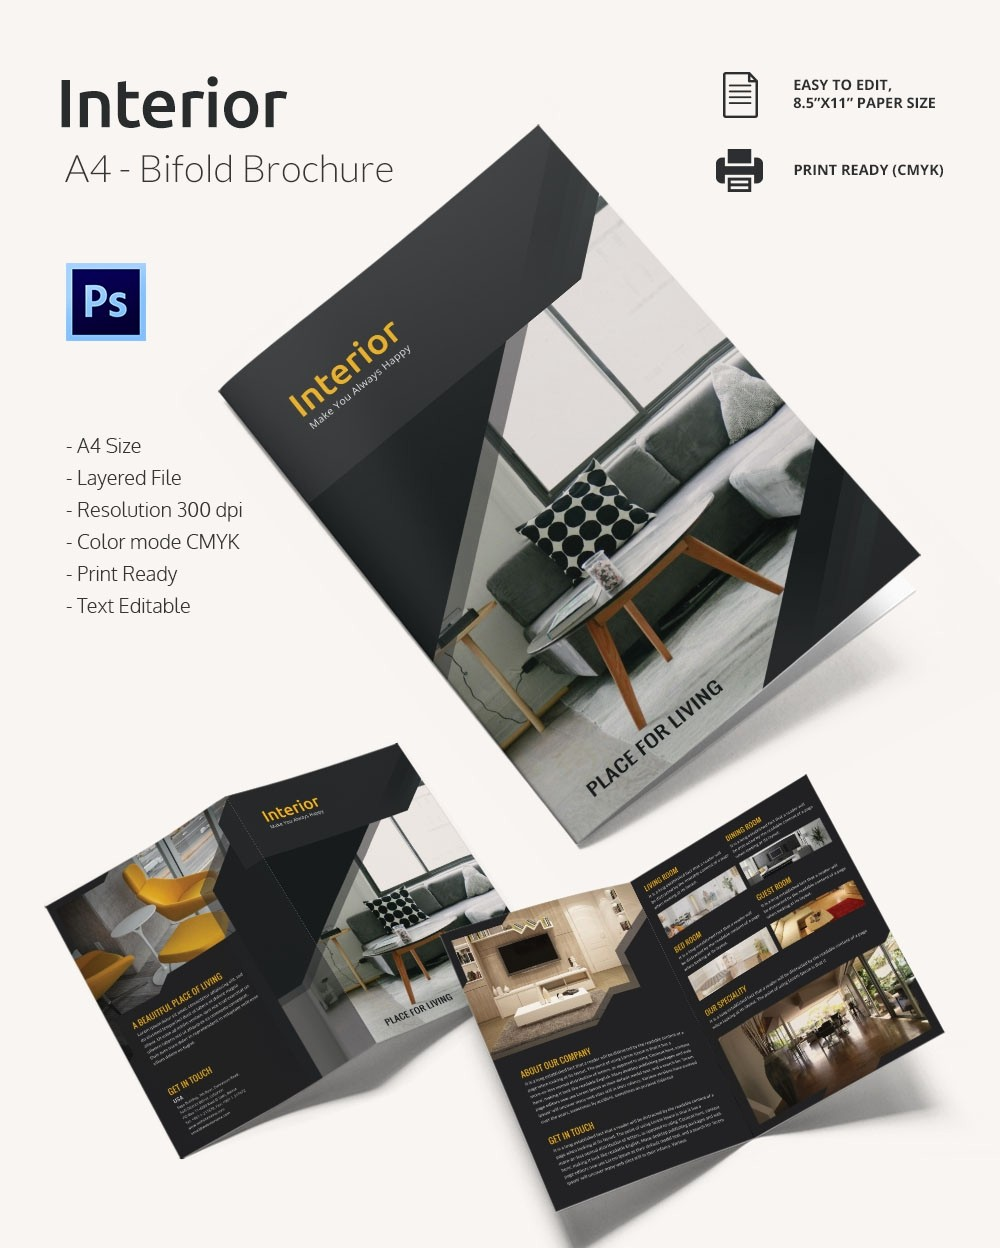 Templates for Flyers and Brochures Luxury Interior Design Brochure 25 Free Psd Eps Indesign